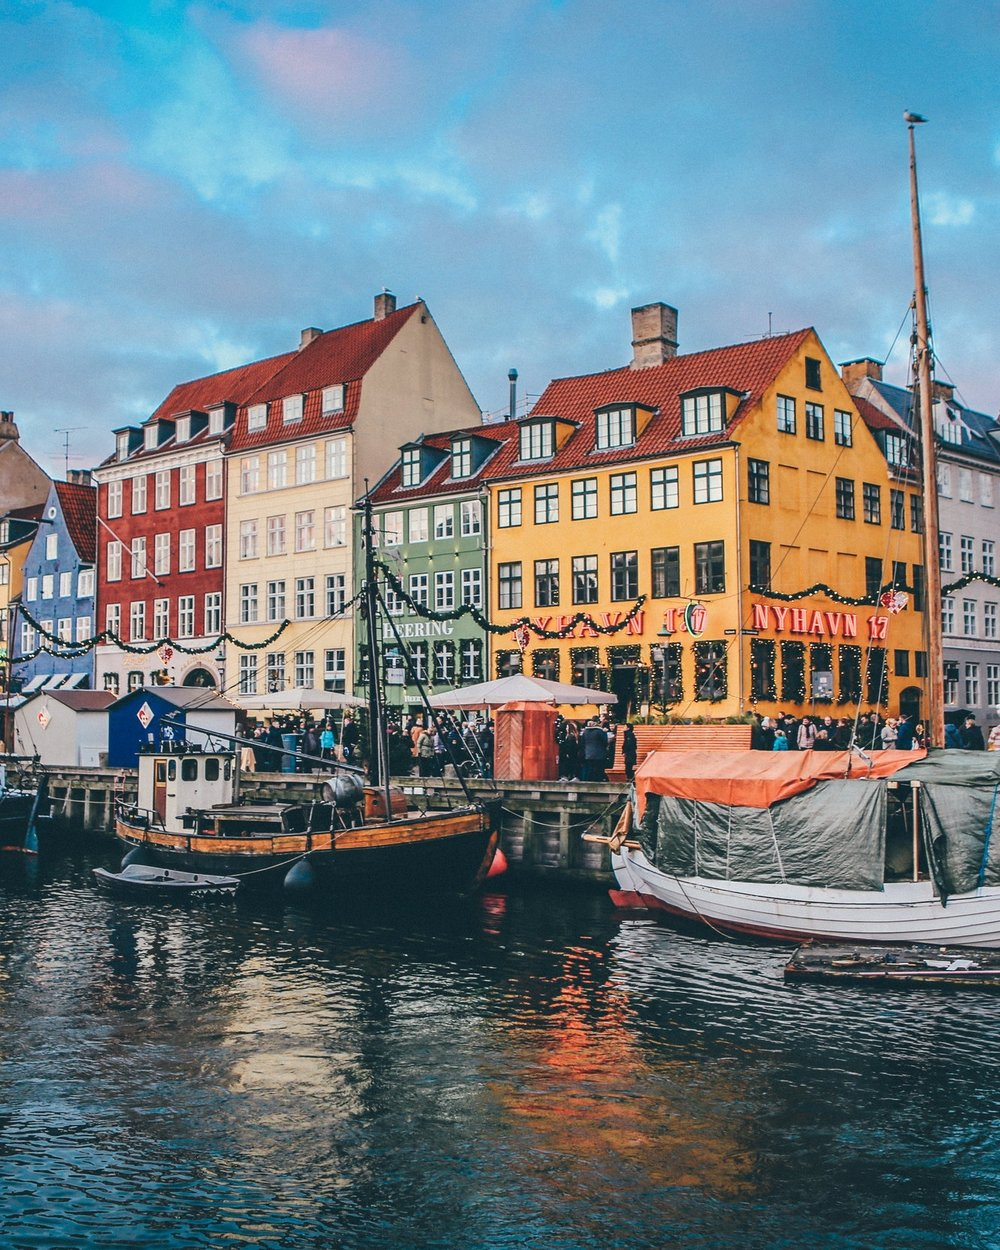 Historical Walking Tour 2050 DKK (Private group price)